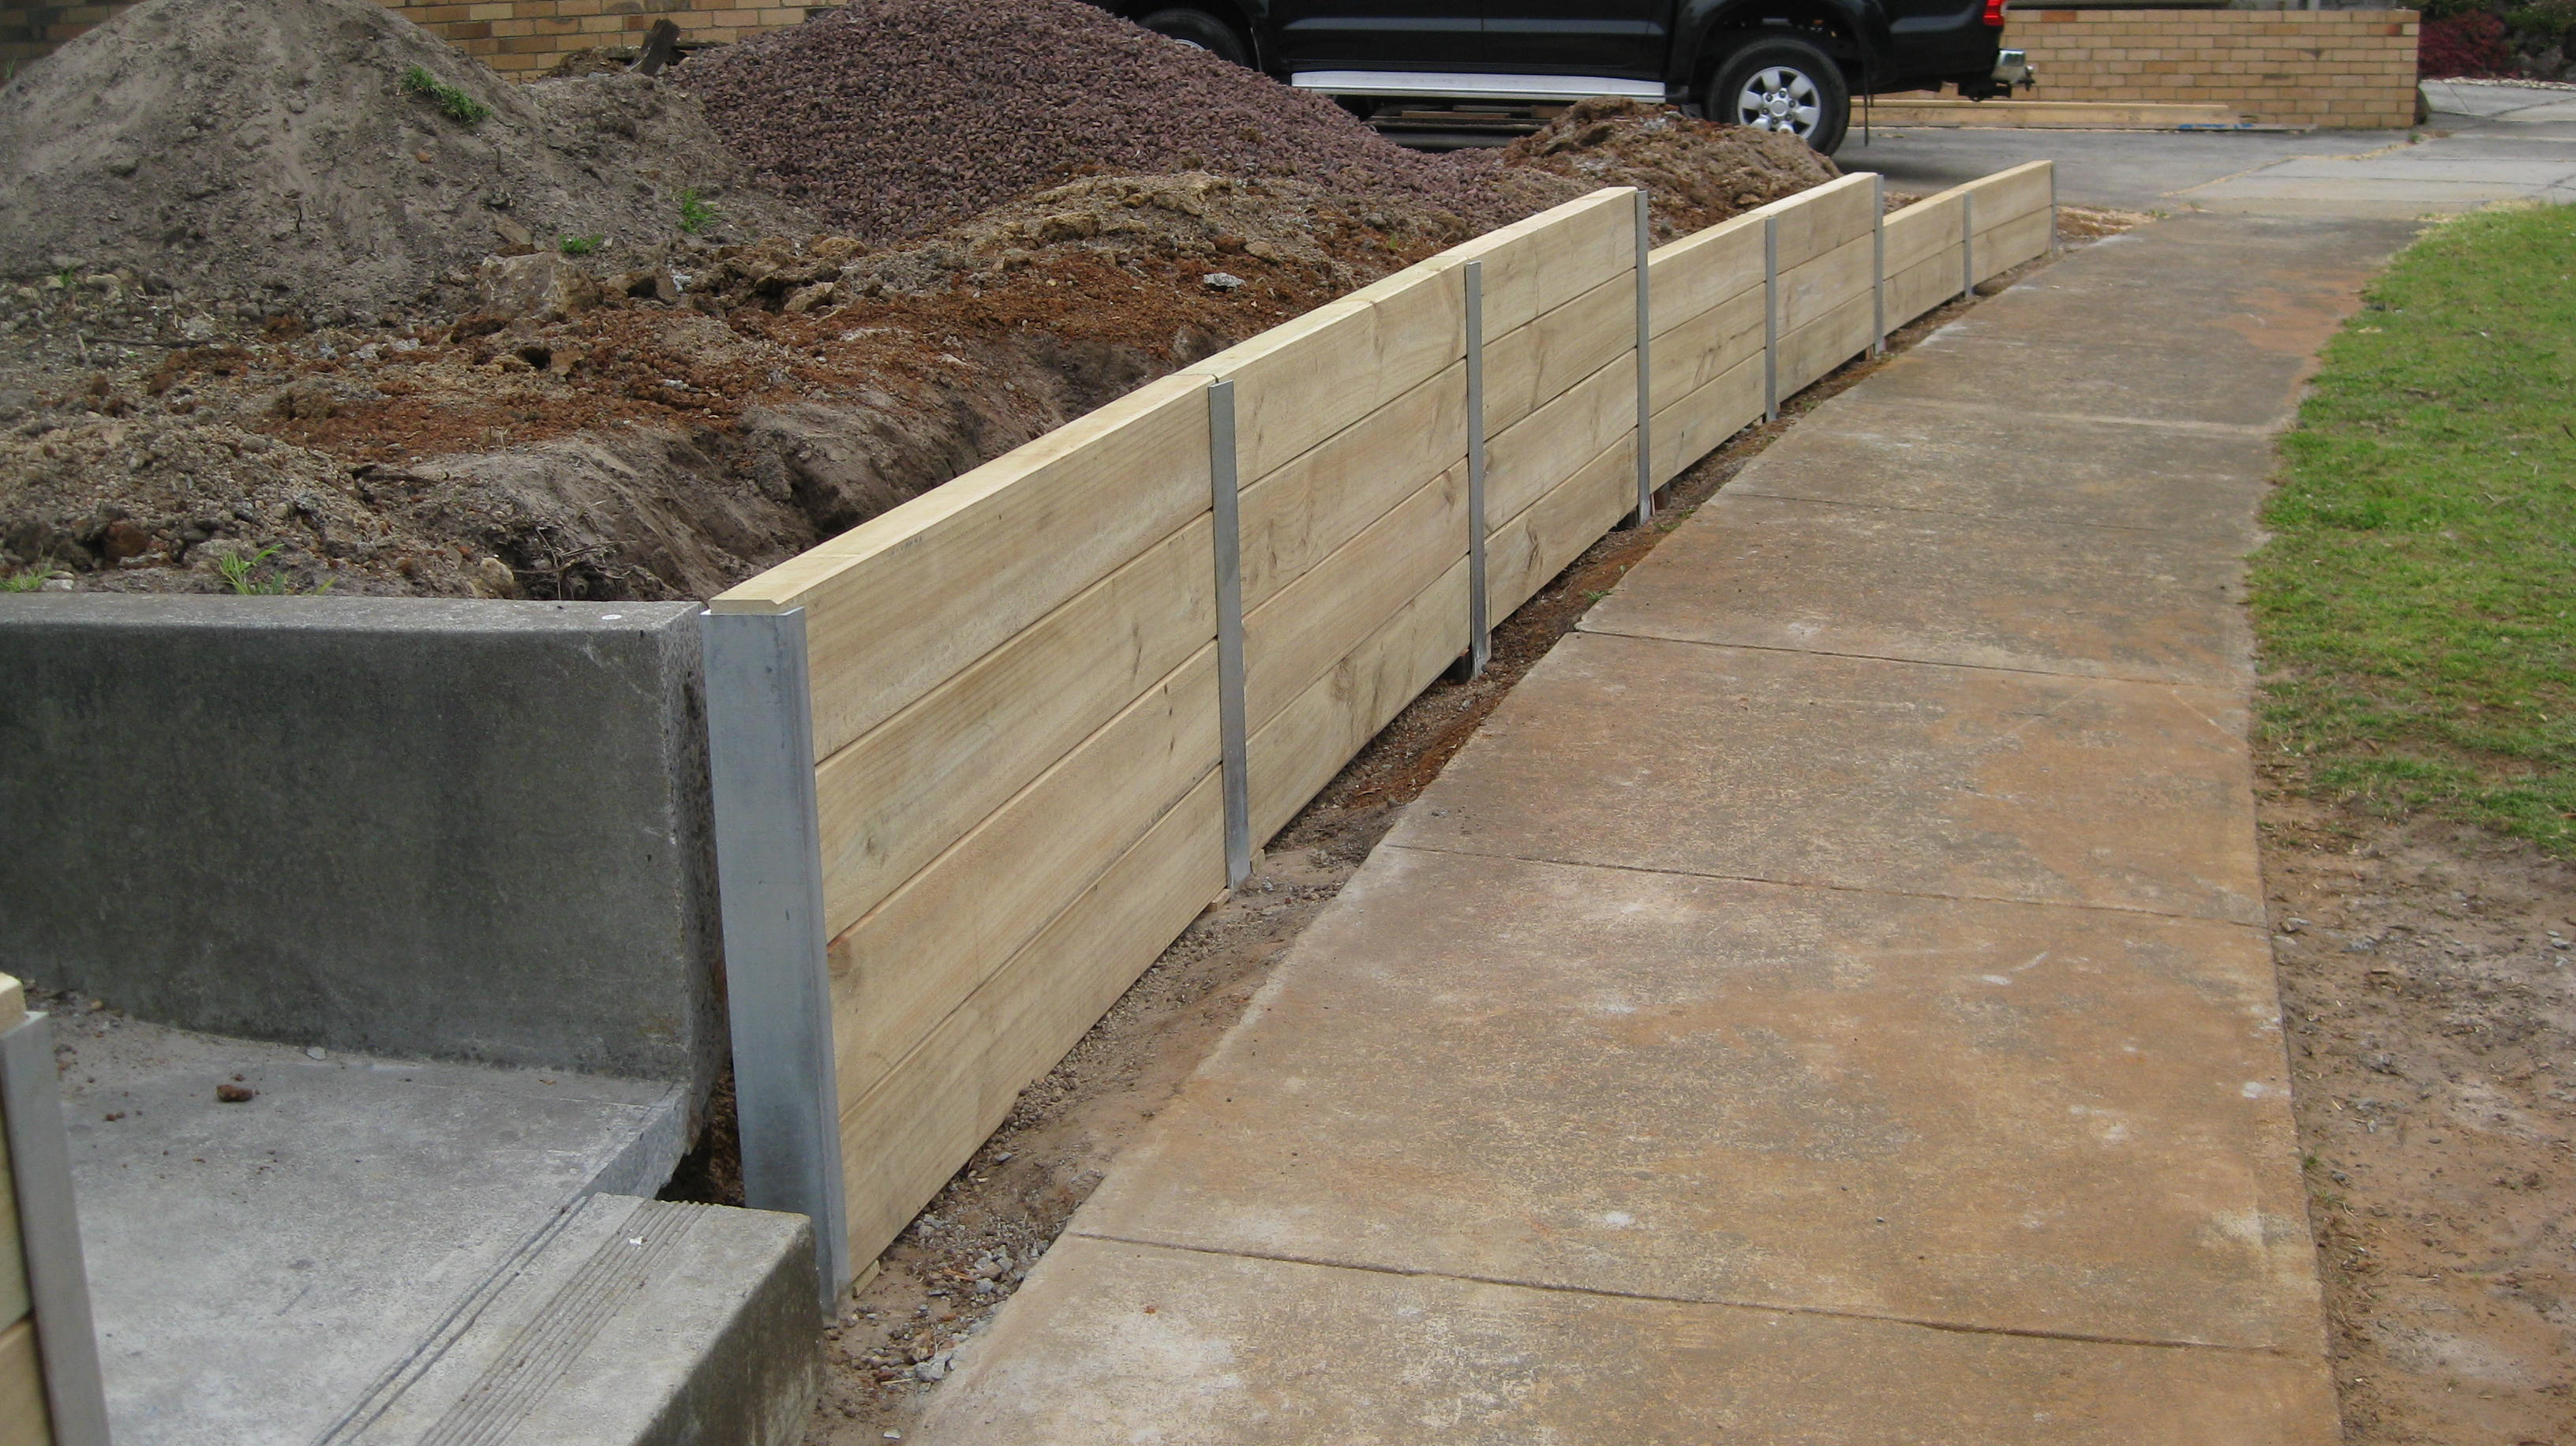 How To Build Reatining Wall With Wood